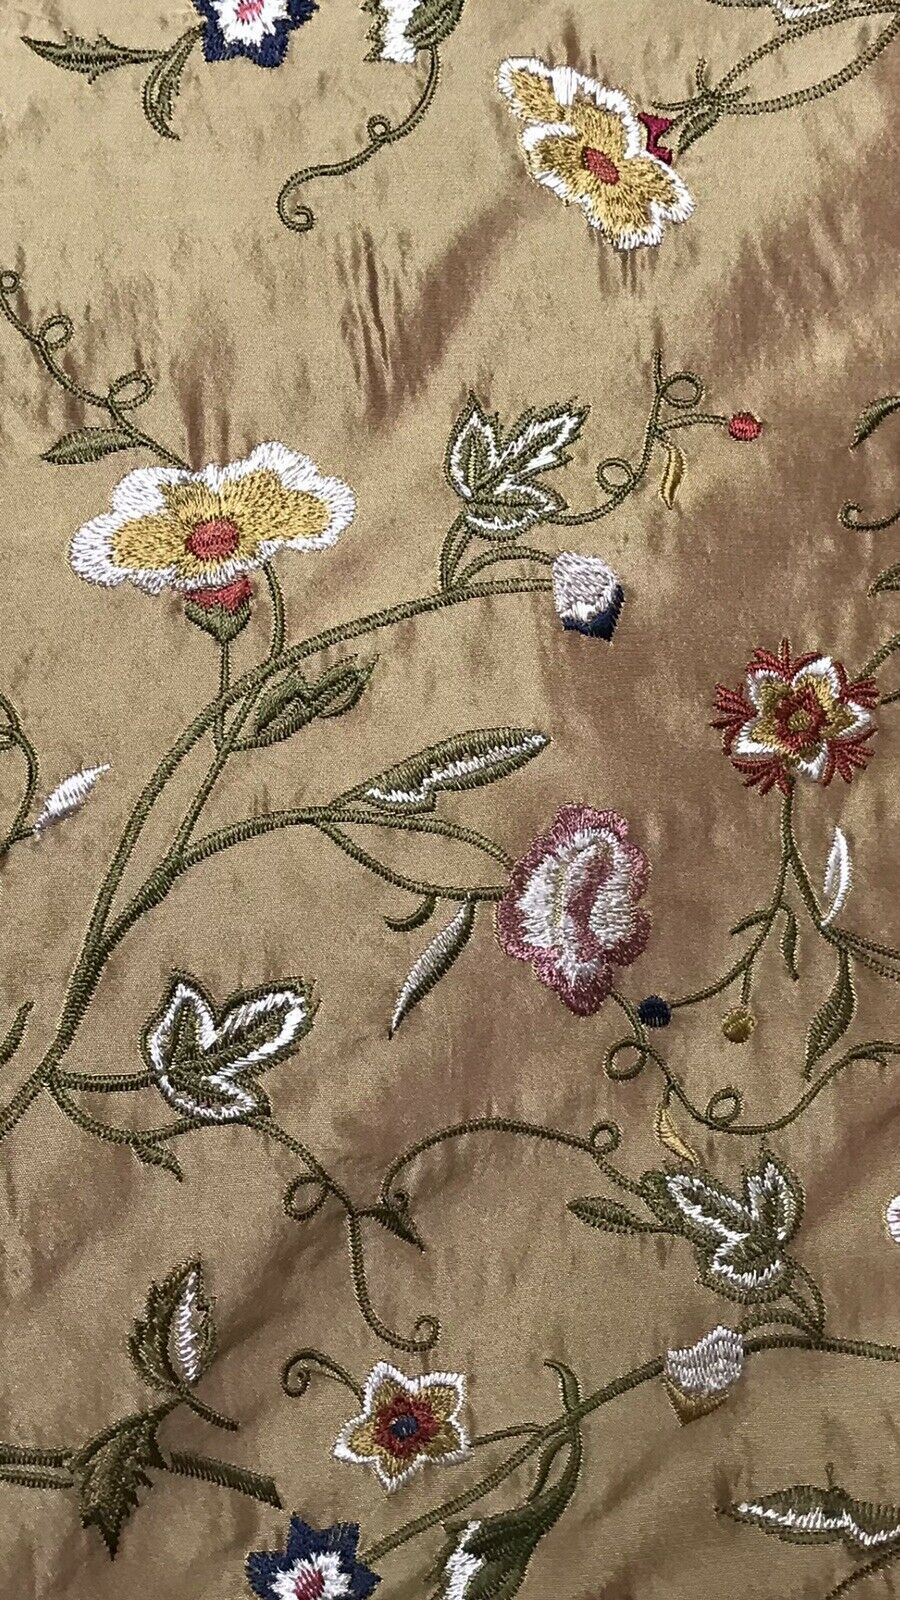 NEW! Designer 100% Silk Dupioni Embroidery Floral Fabric Gold & Pink Iridescence